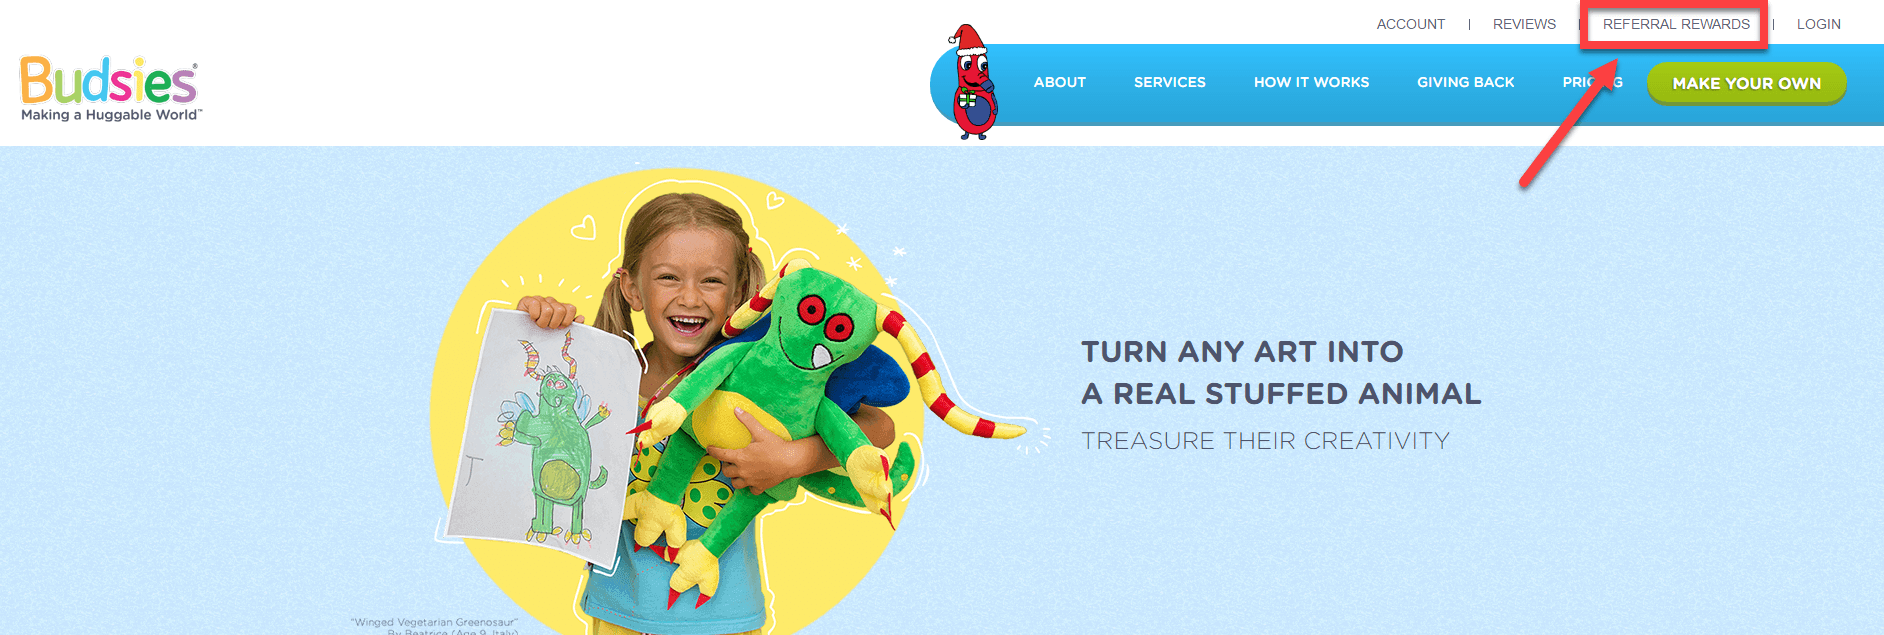 budsies referral promotion